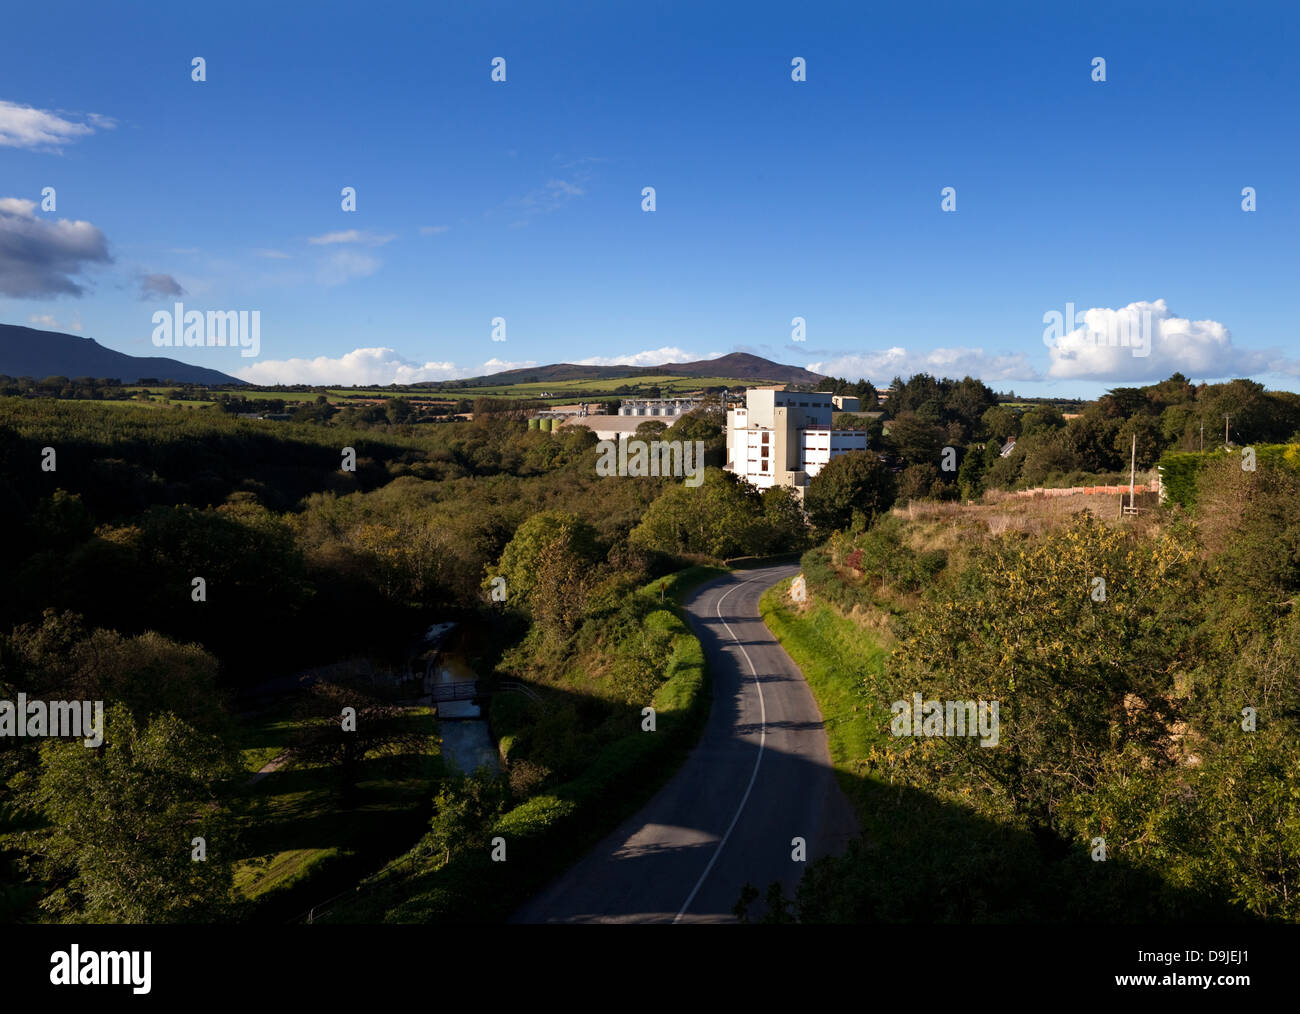 The River Mahon and Flahavan's Mills (porridge makers), From the Old Railway Viaduct on the Waterford Greenway - Stock Image